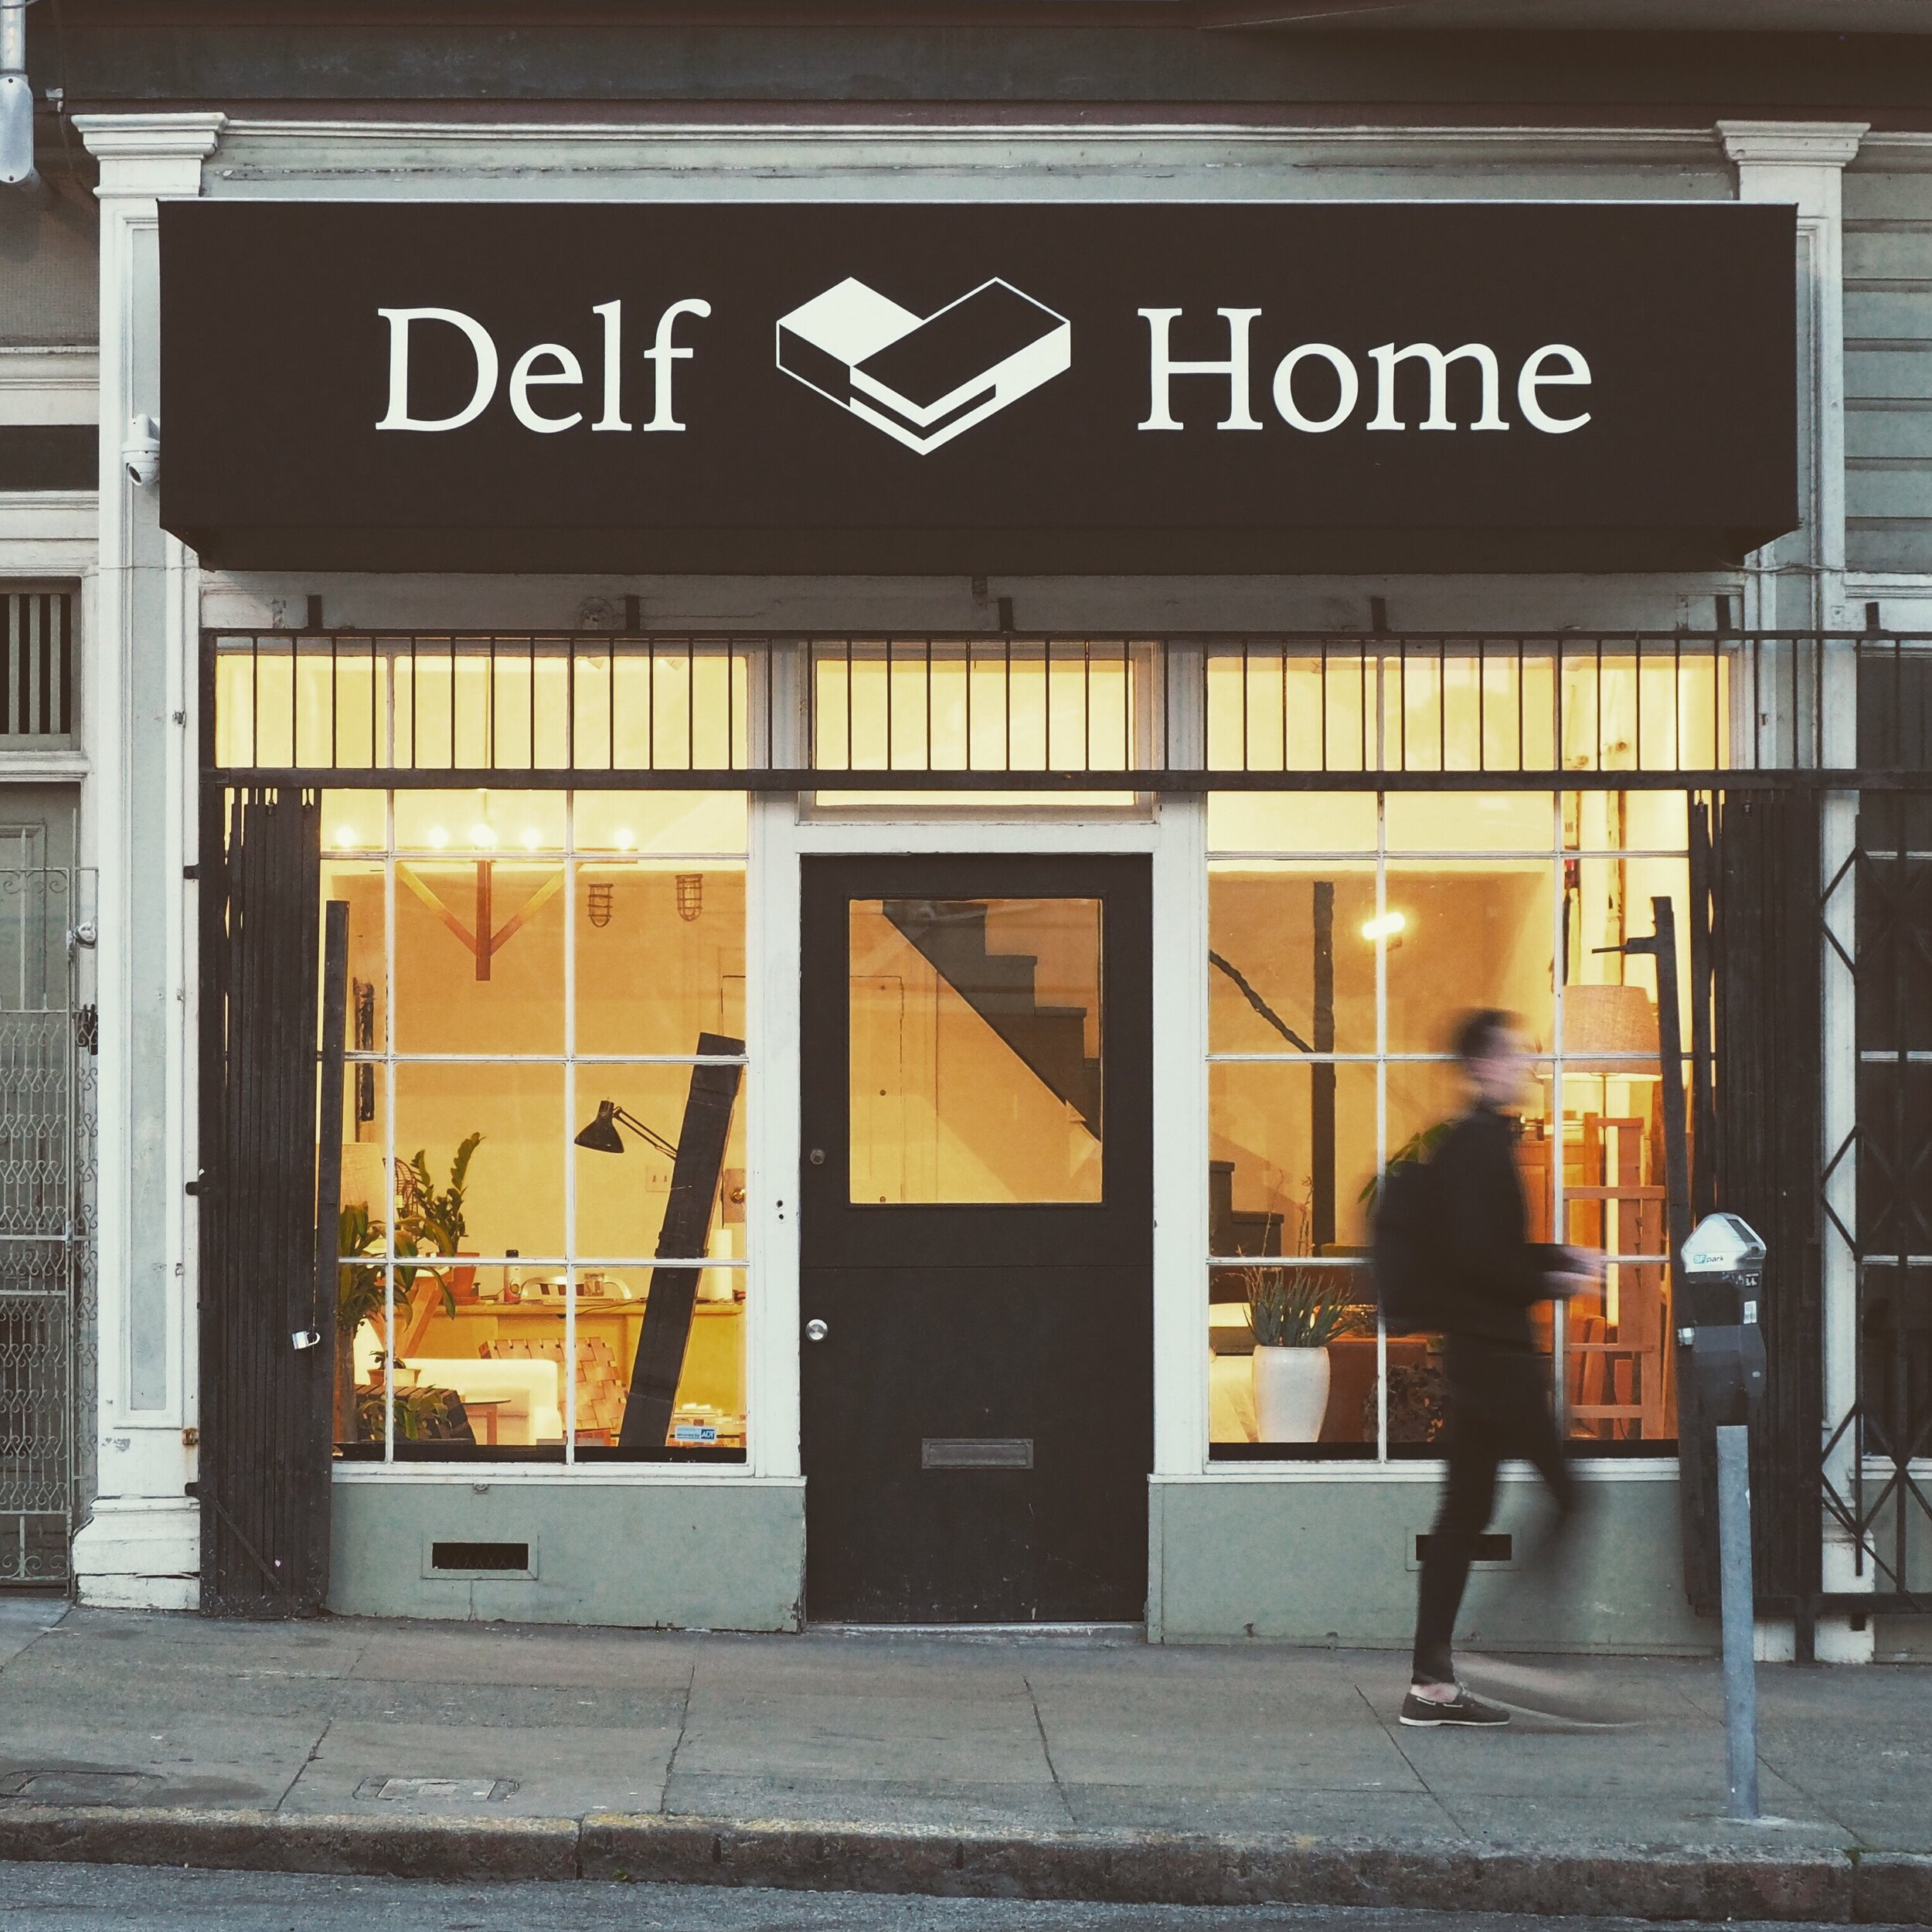 Delf Home Storefront